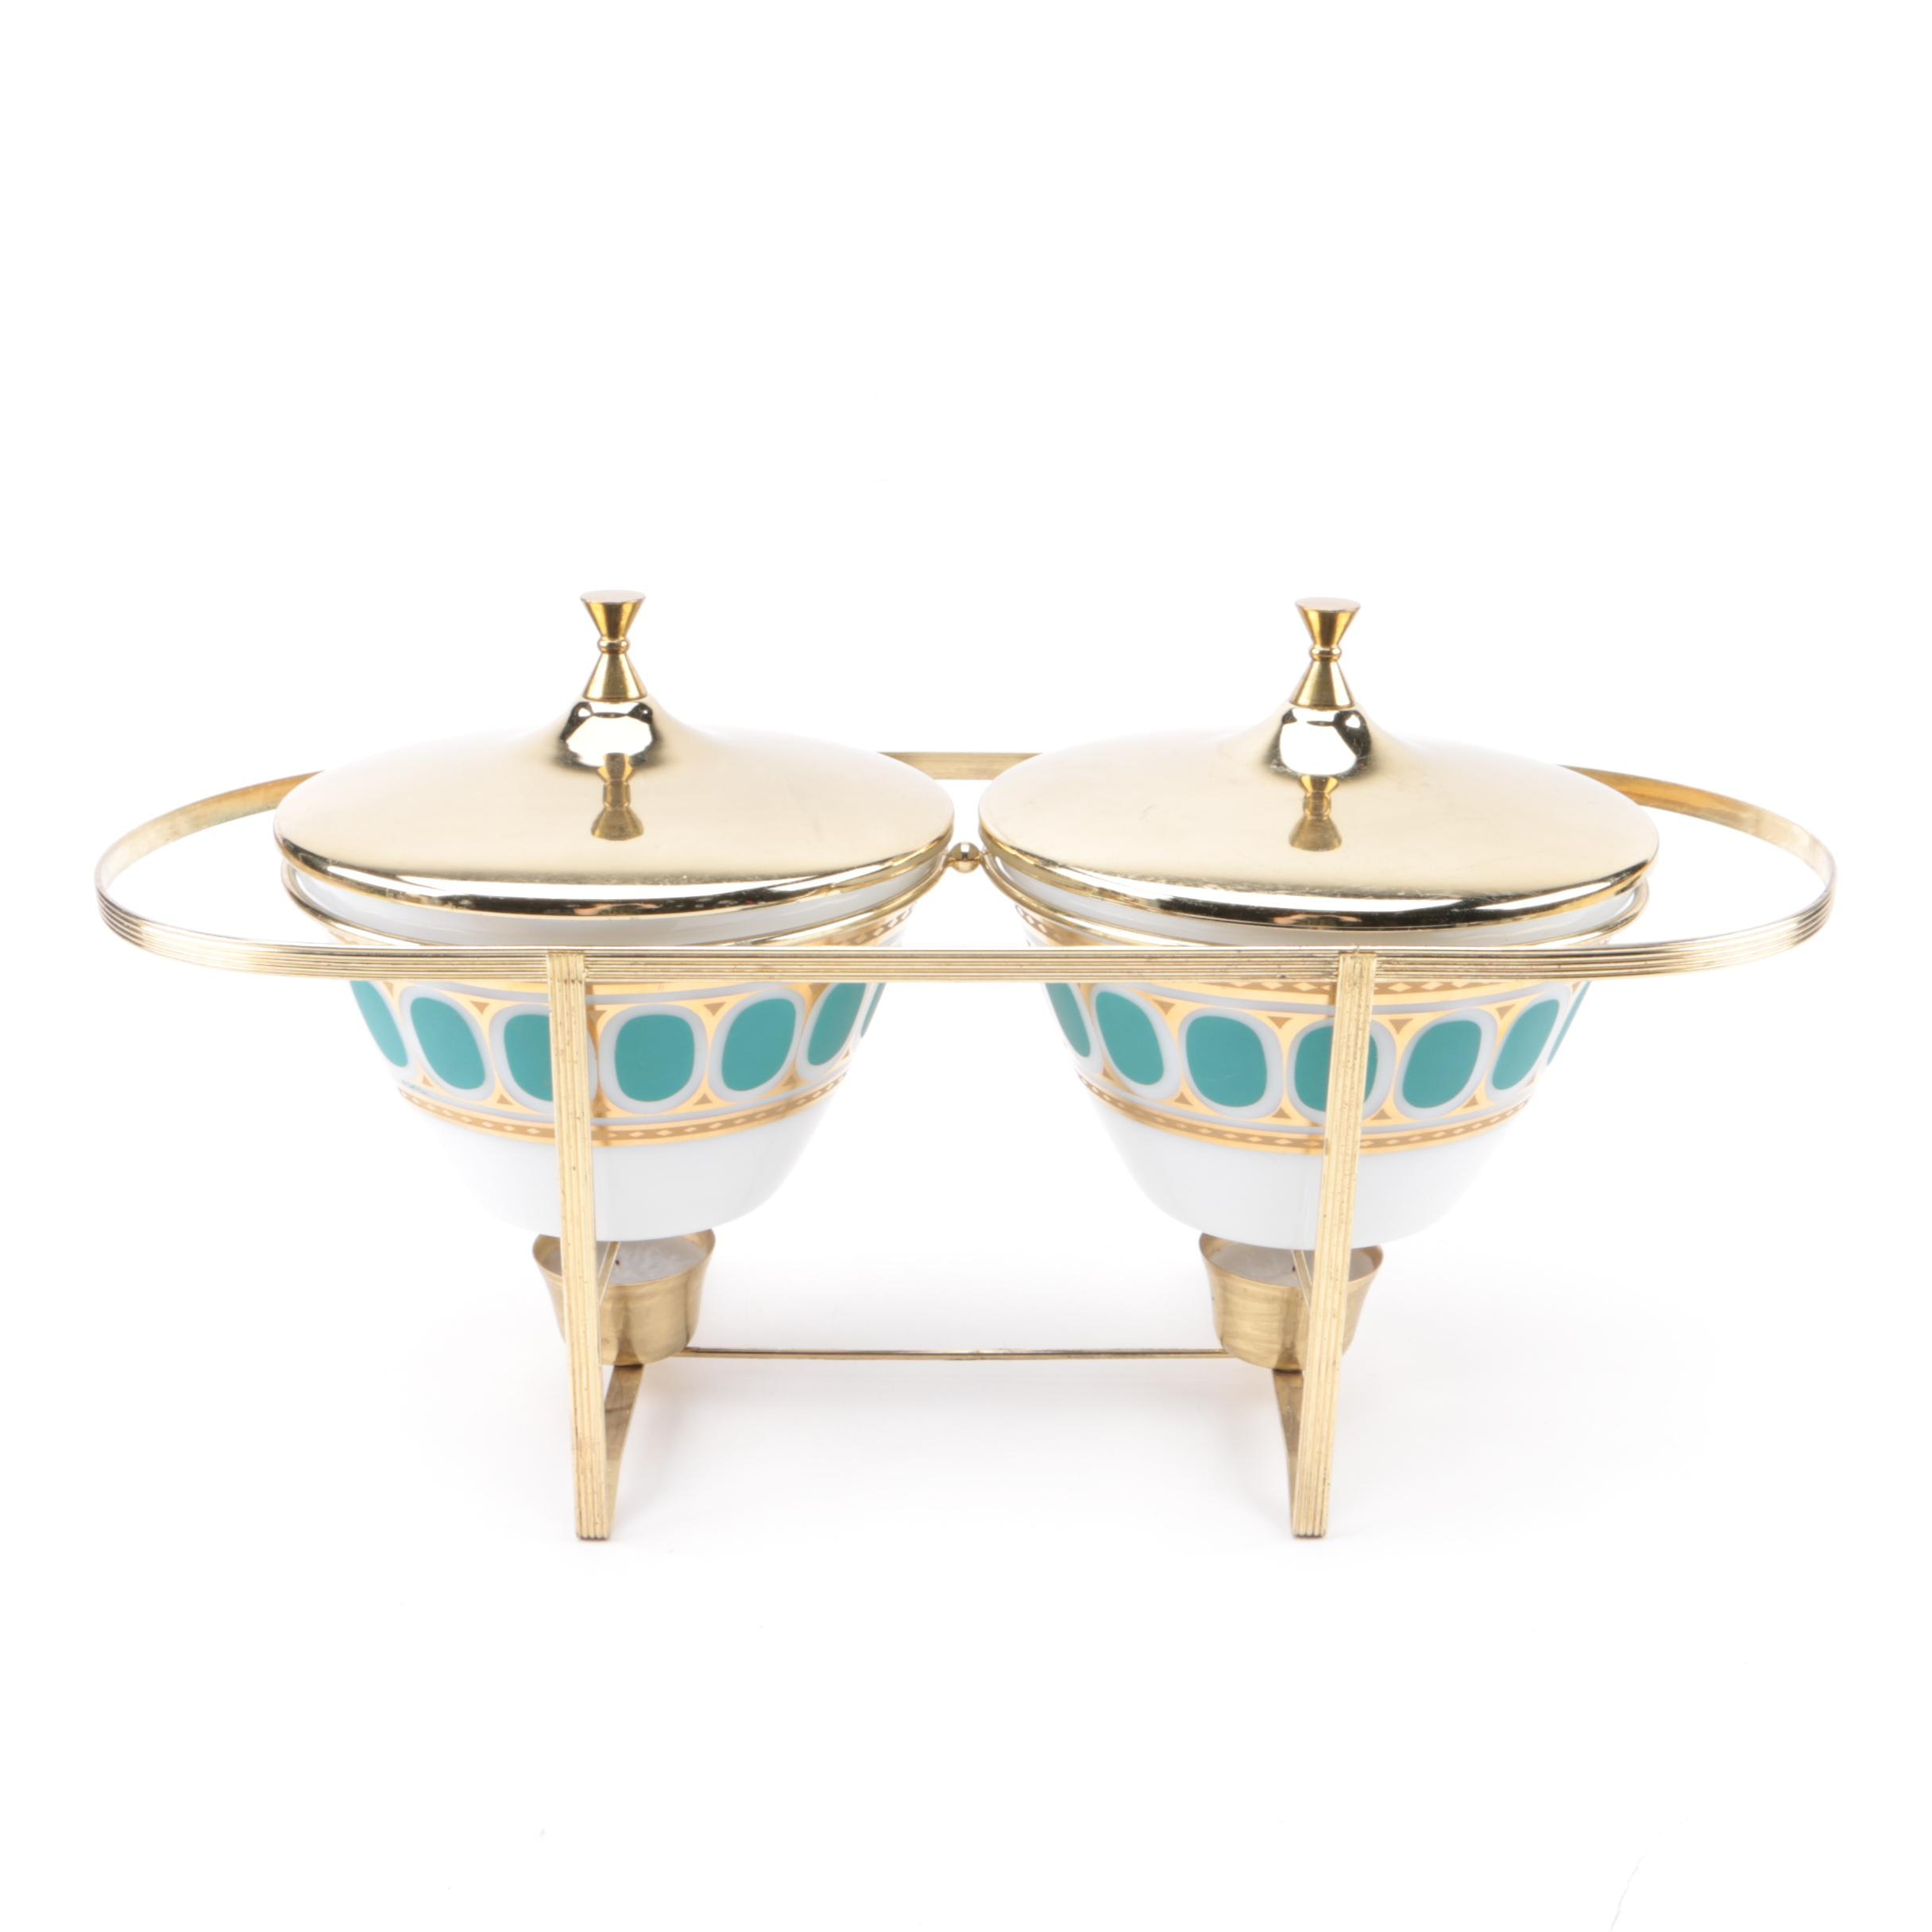 1960s Fire-King Fred Press Design Dual Chafing Dish Set